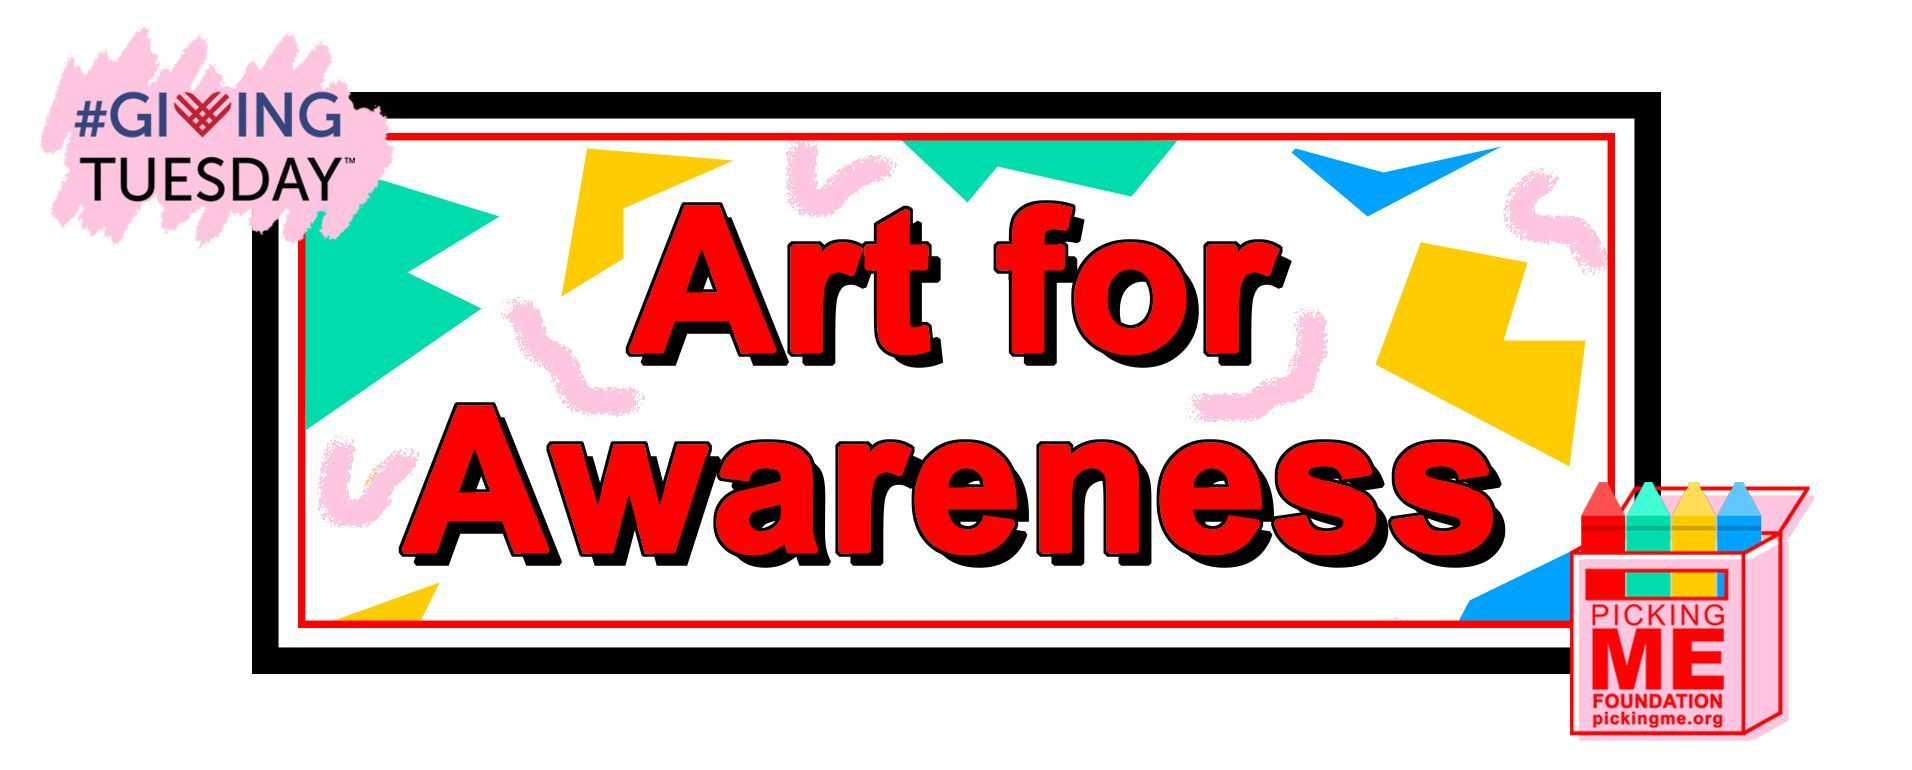 #GivingTuesday: Art for Awareness Party!